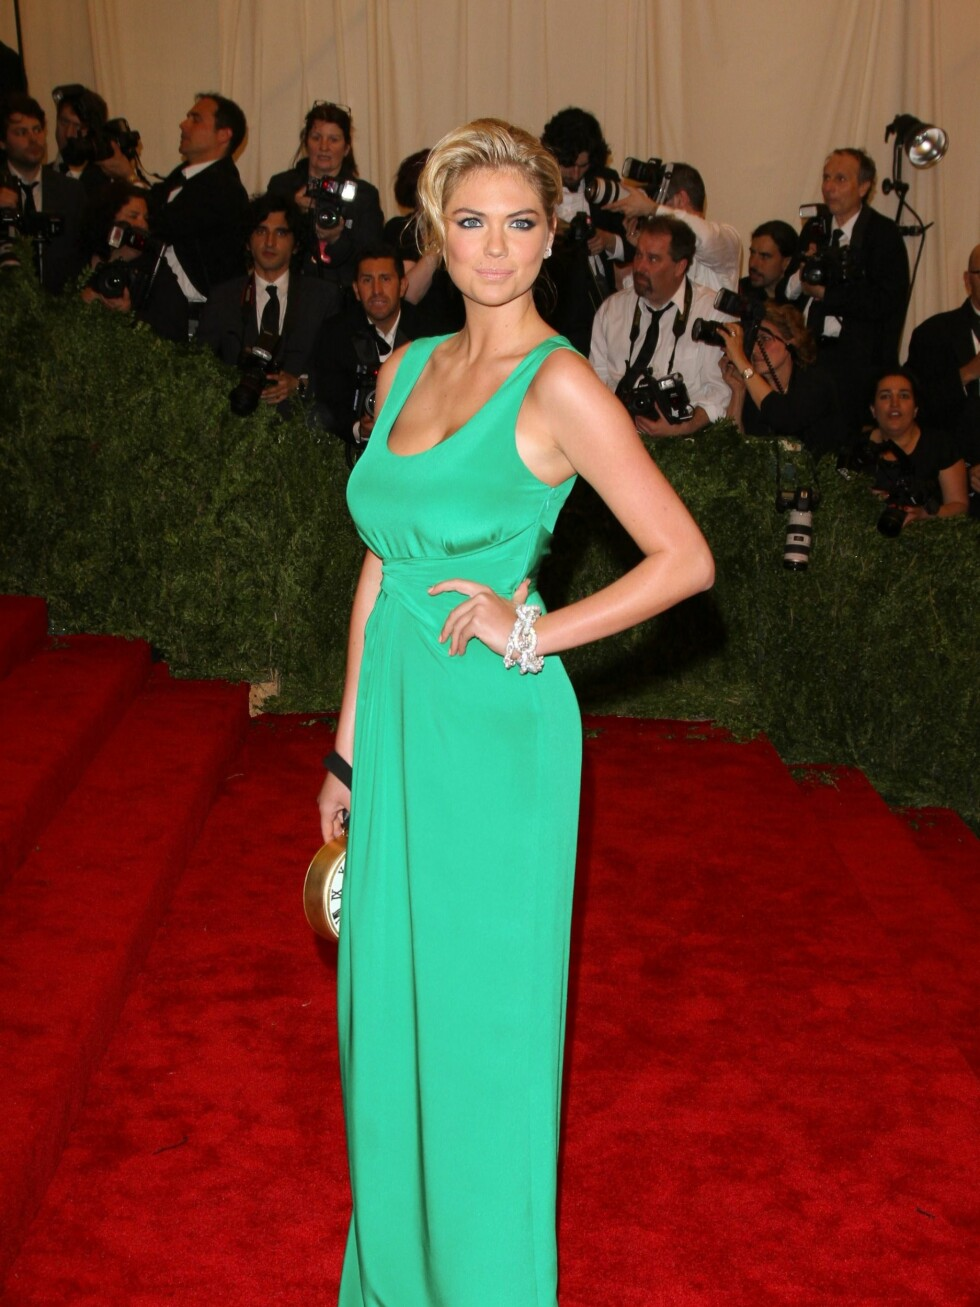 Kate Upton Foto: All Over Press